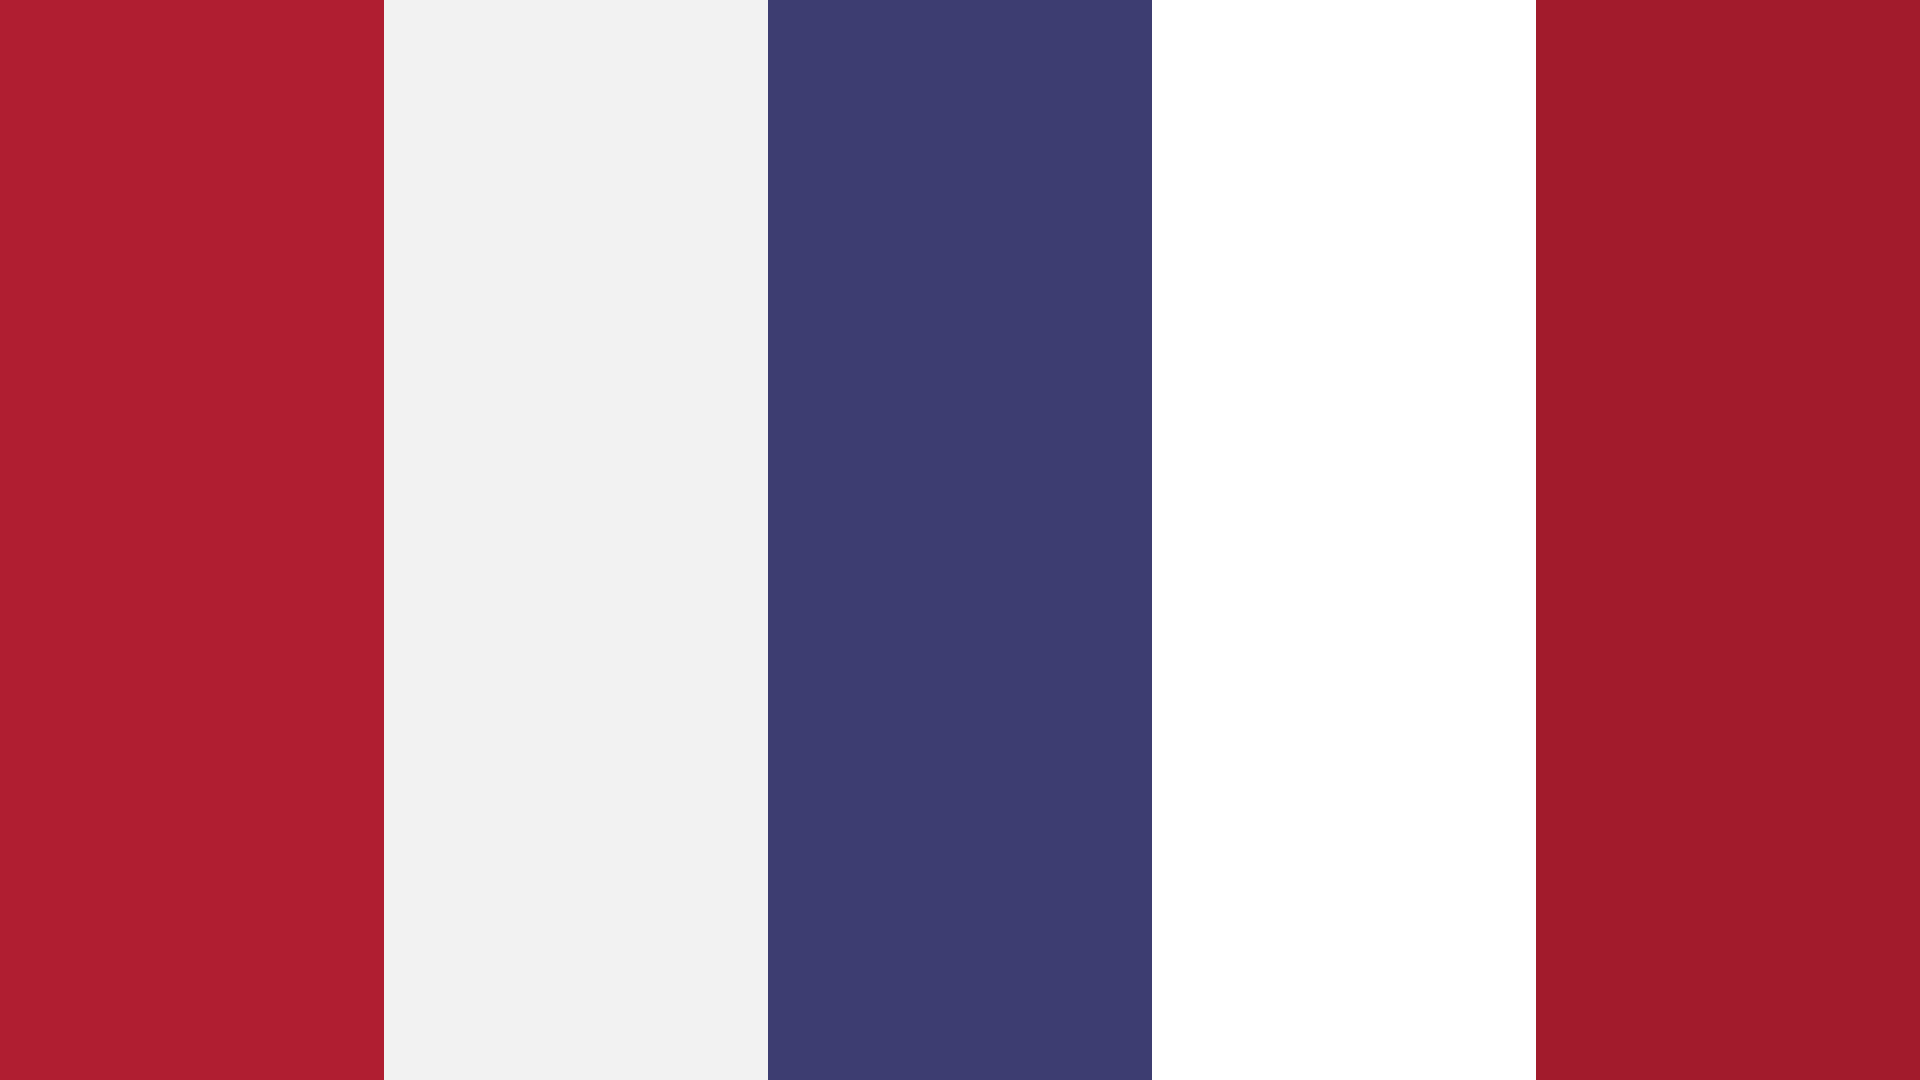 Stripes Of Red And Blue Color Palette